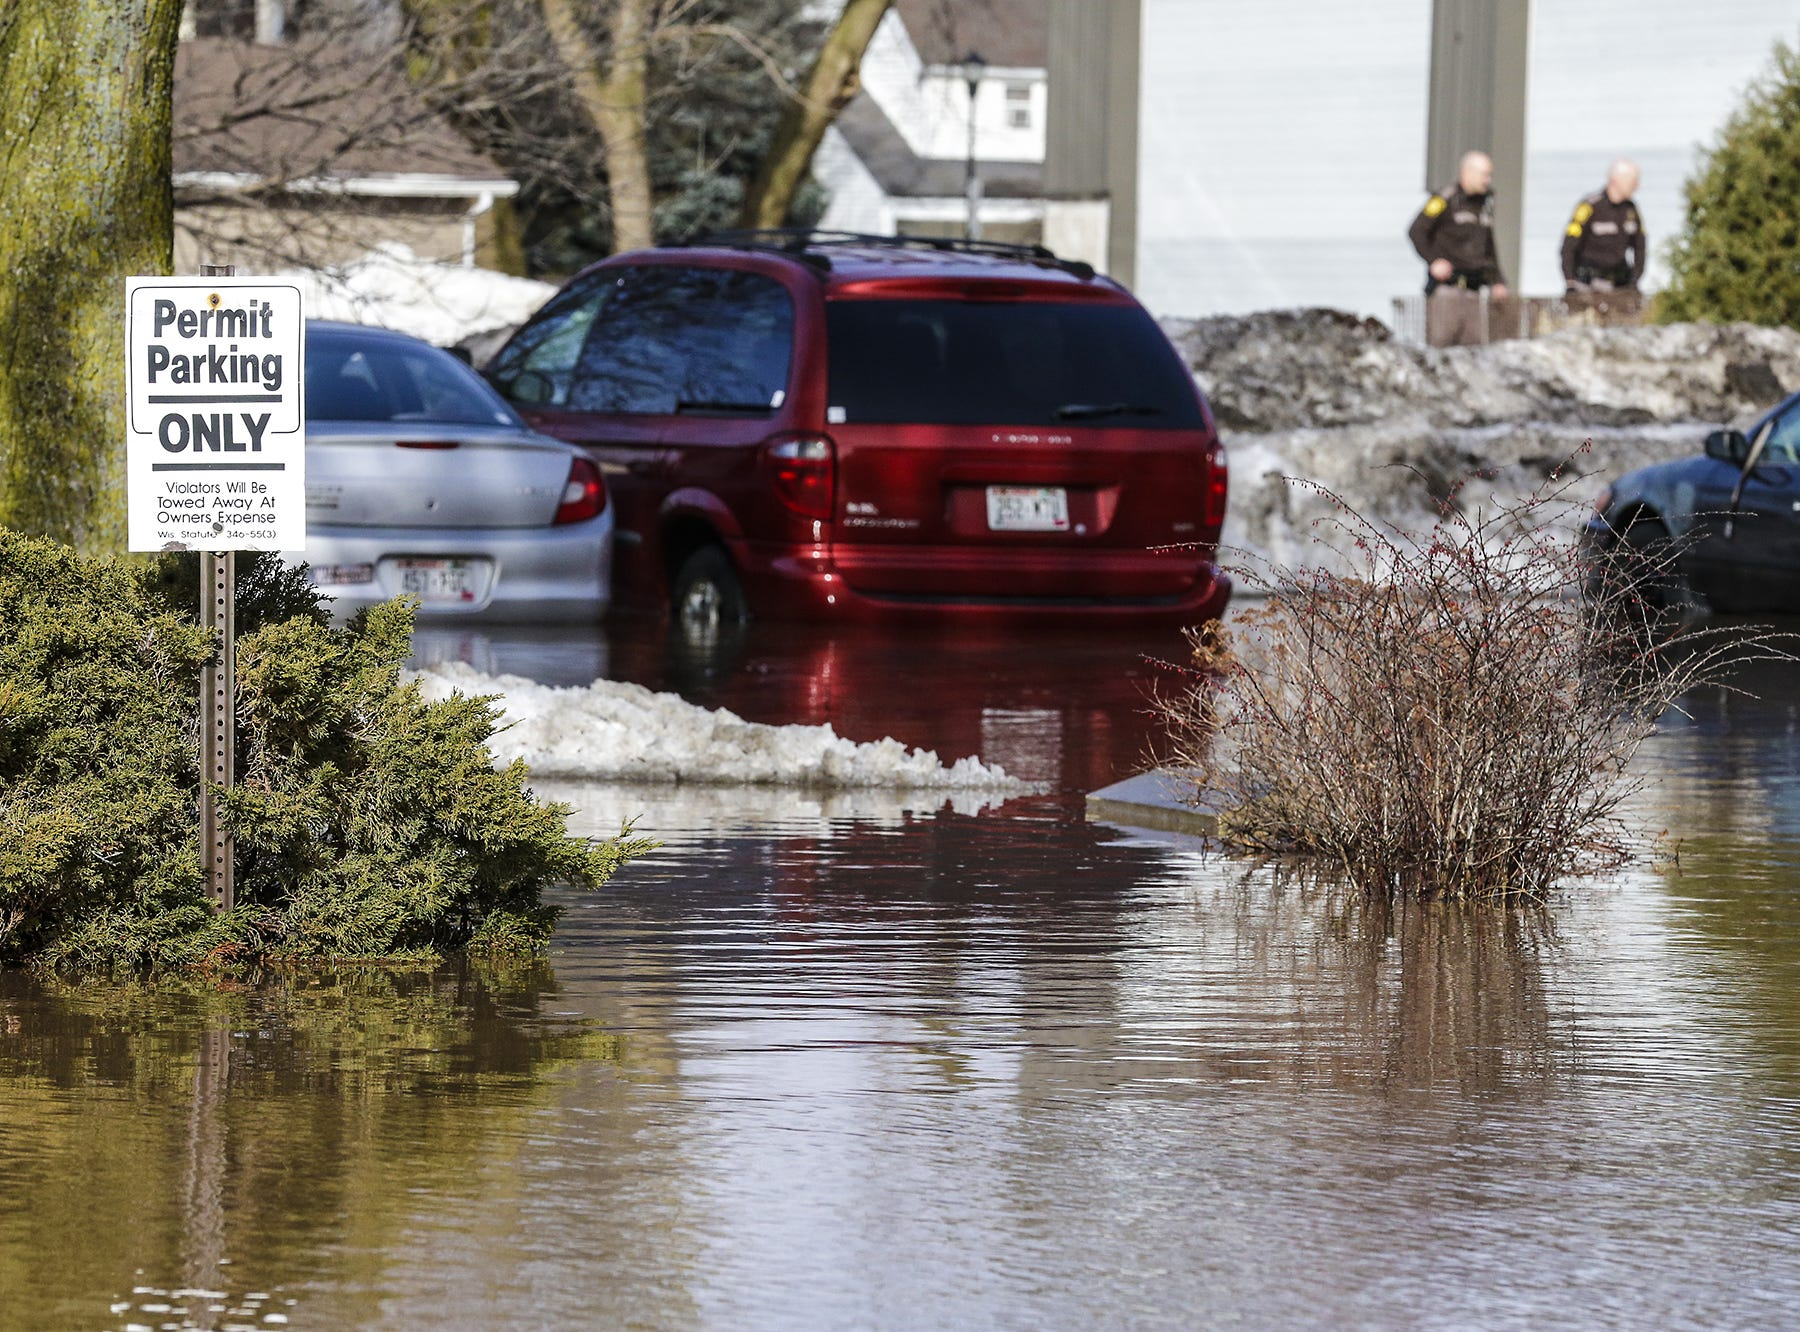 Fond du Lac County Sheriff's deputies work near a flooded parking lot Thursday, March 14, 2019 on Western Avenue in Fond du Lac, Wis. Ice jams on the east branch of the Fond du Lac River caused localized flooding problems in the city. Doug Raflik/USA TODAY NETWORK-Wisconsin